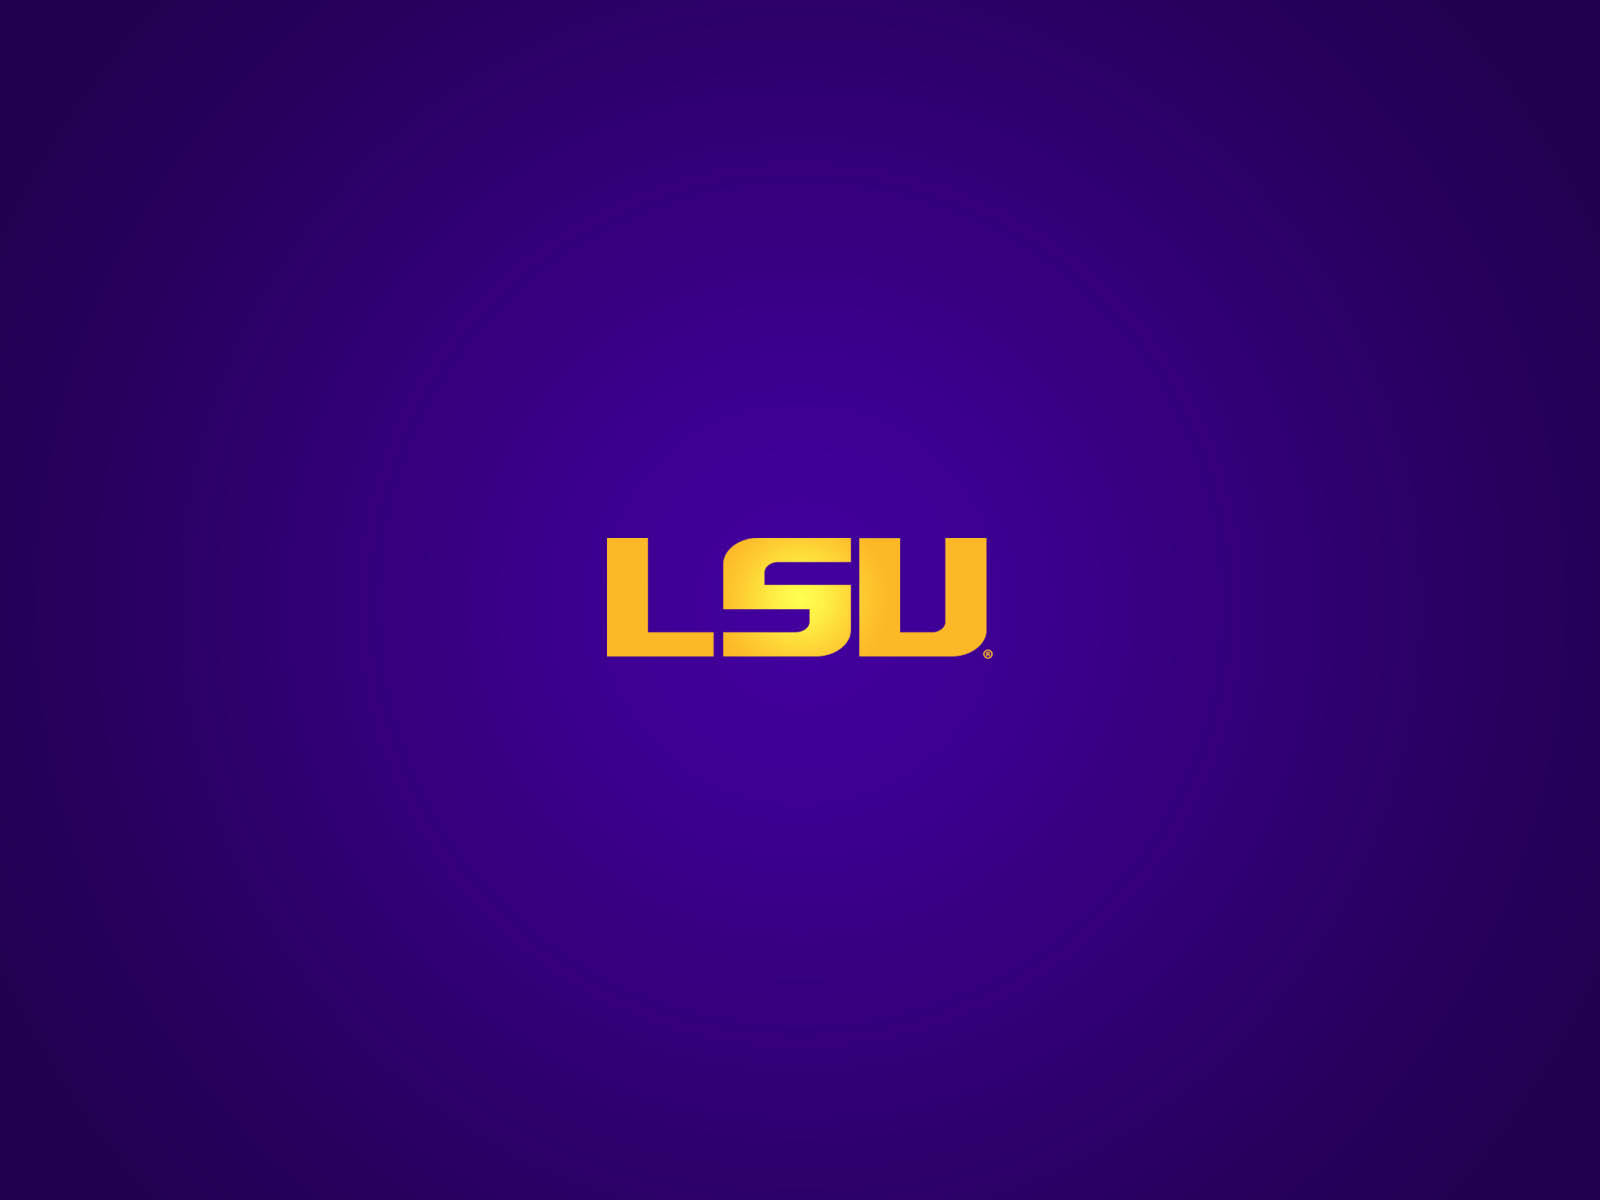 Lsu Wallpaper